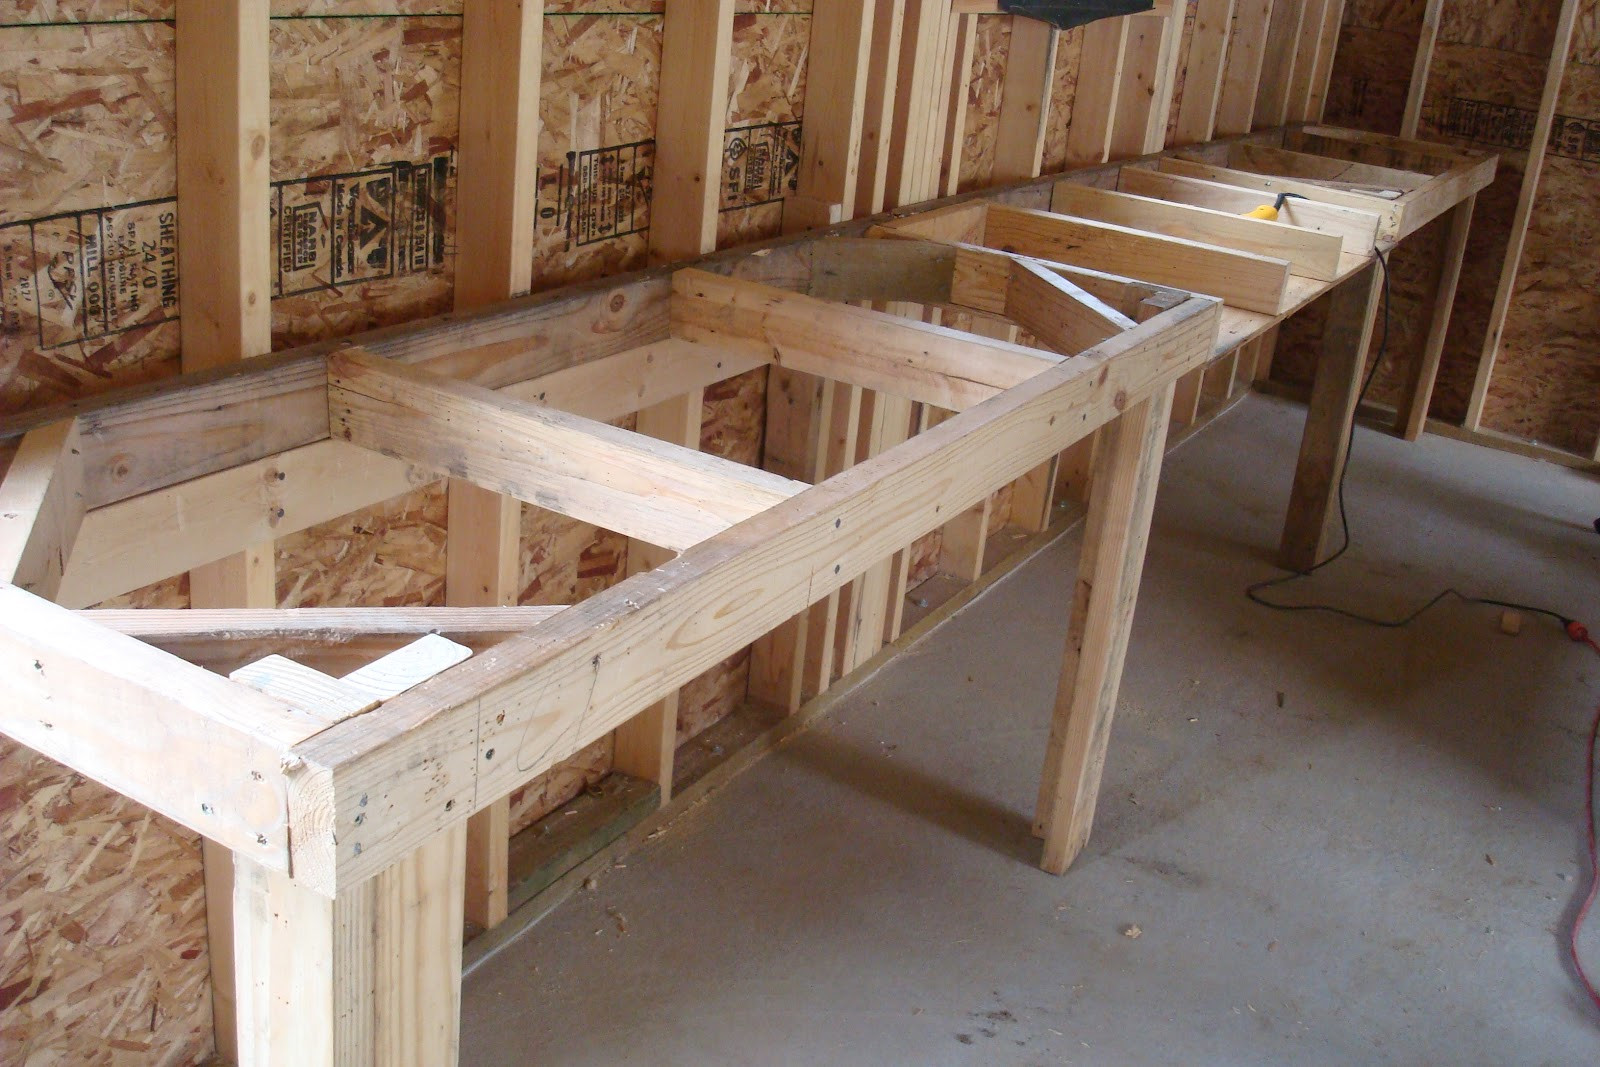 Best ideas about DIY Wood Work . Save or Pin Homemade Work Bench Plans PDF Woodworking Now.